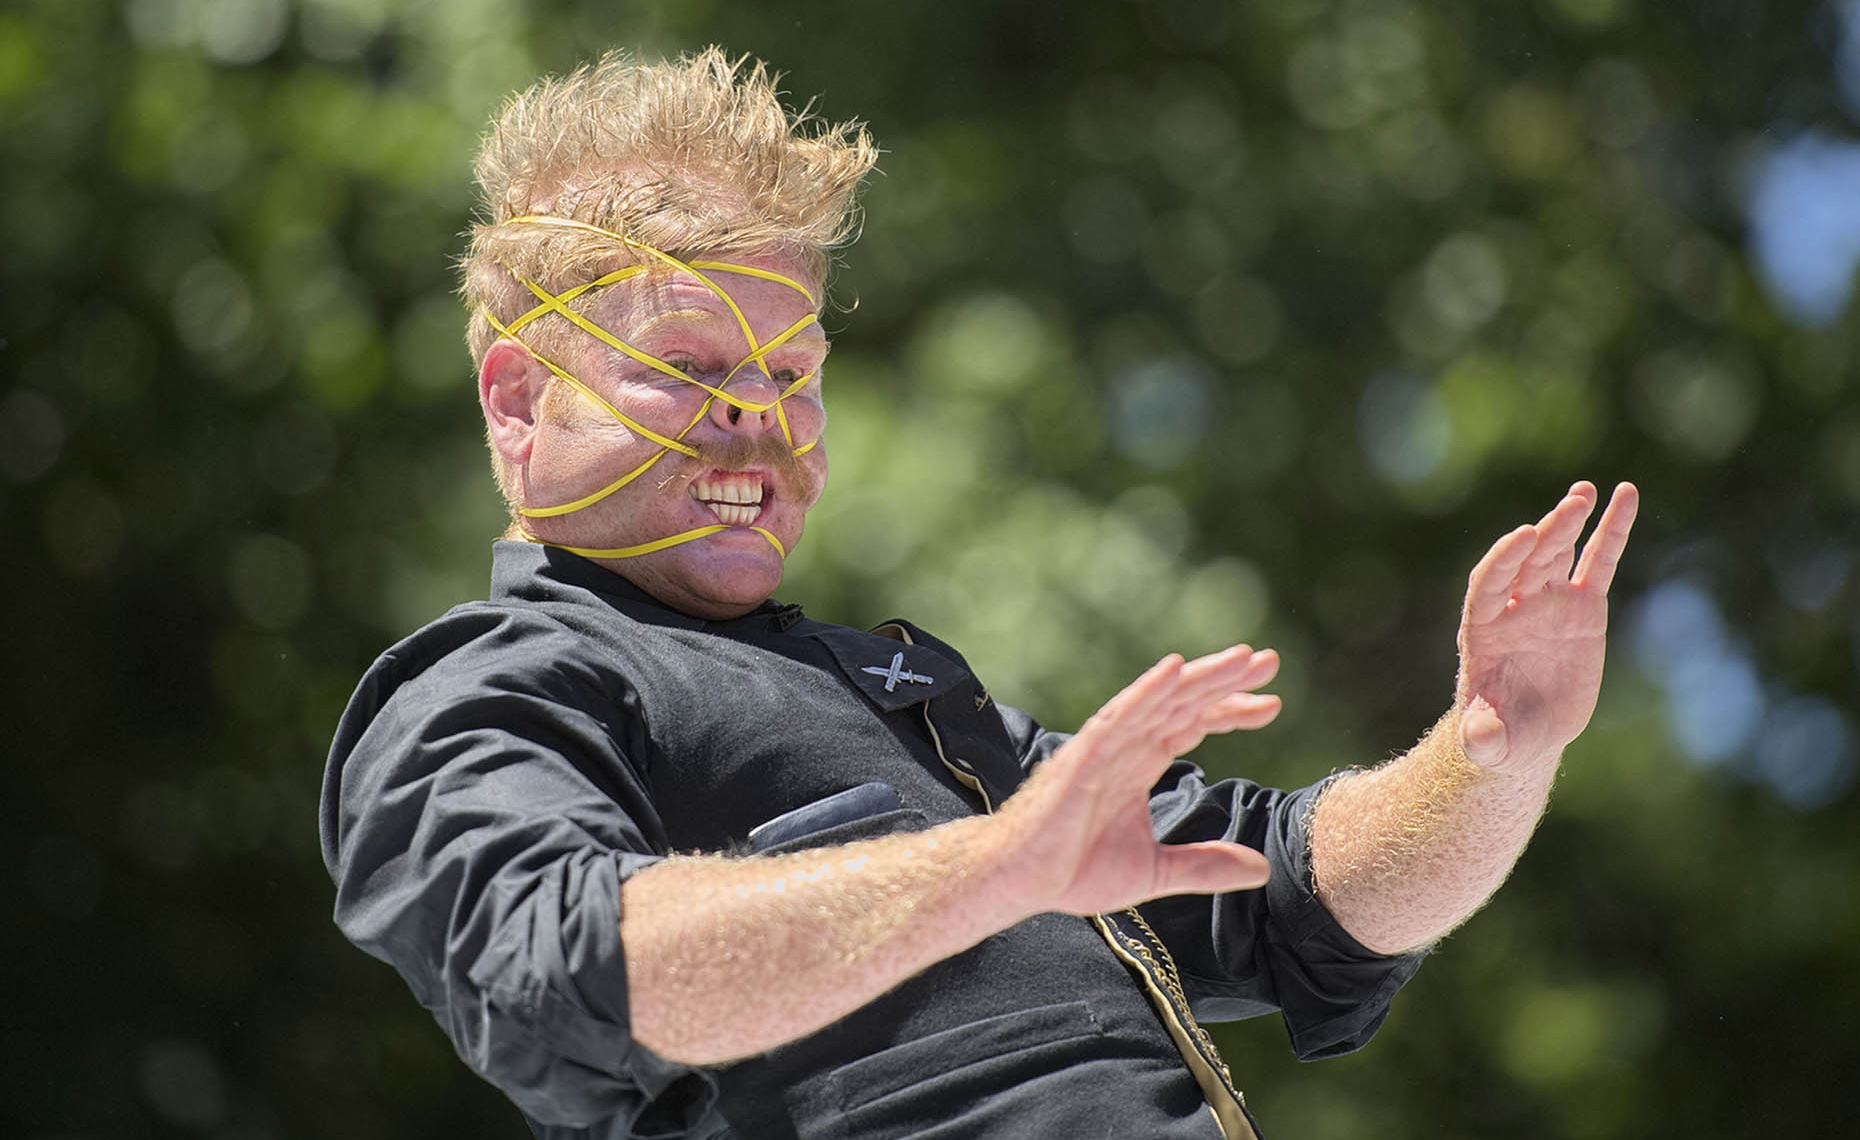 LAT_PhotoReporters__Rubberband-Boy-Shay-Horay-at-World-Buskers-Festival_Christchurch_NZ